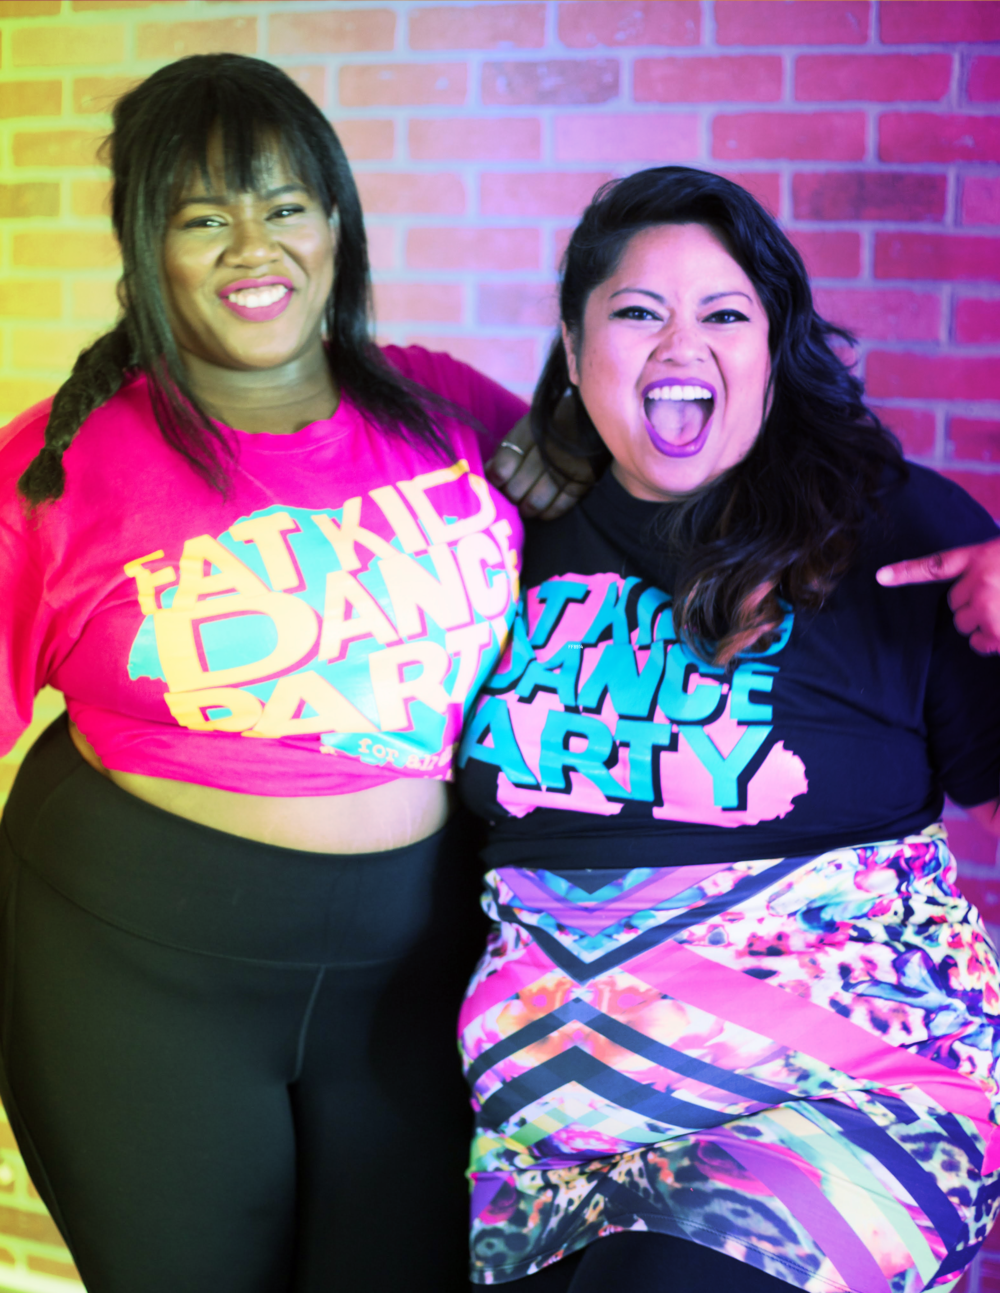 Fat Kid Dance Party is an act of dance floor reclamation - It's a mash-up of dance aerobics, line dancing, sing alongs and unbridled enthusiasm. If you've ever been called